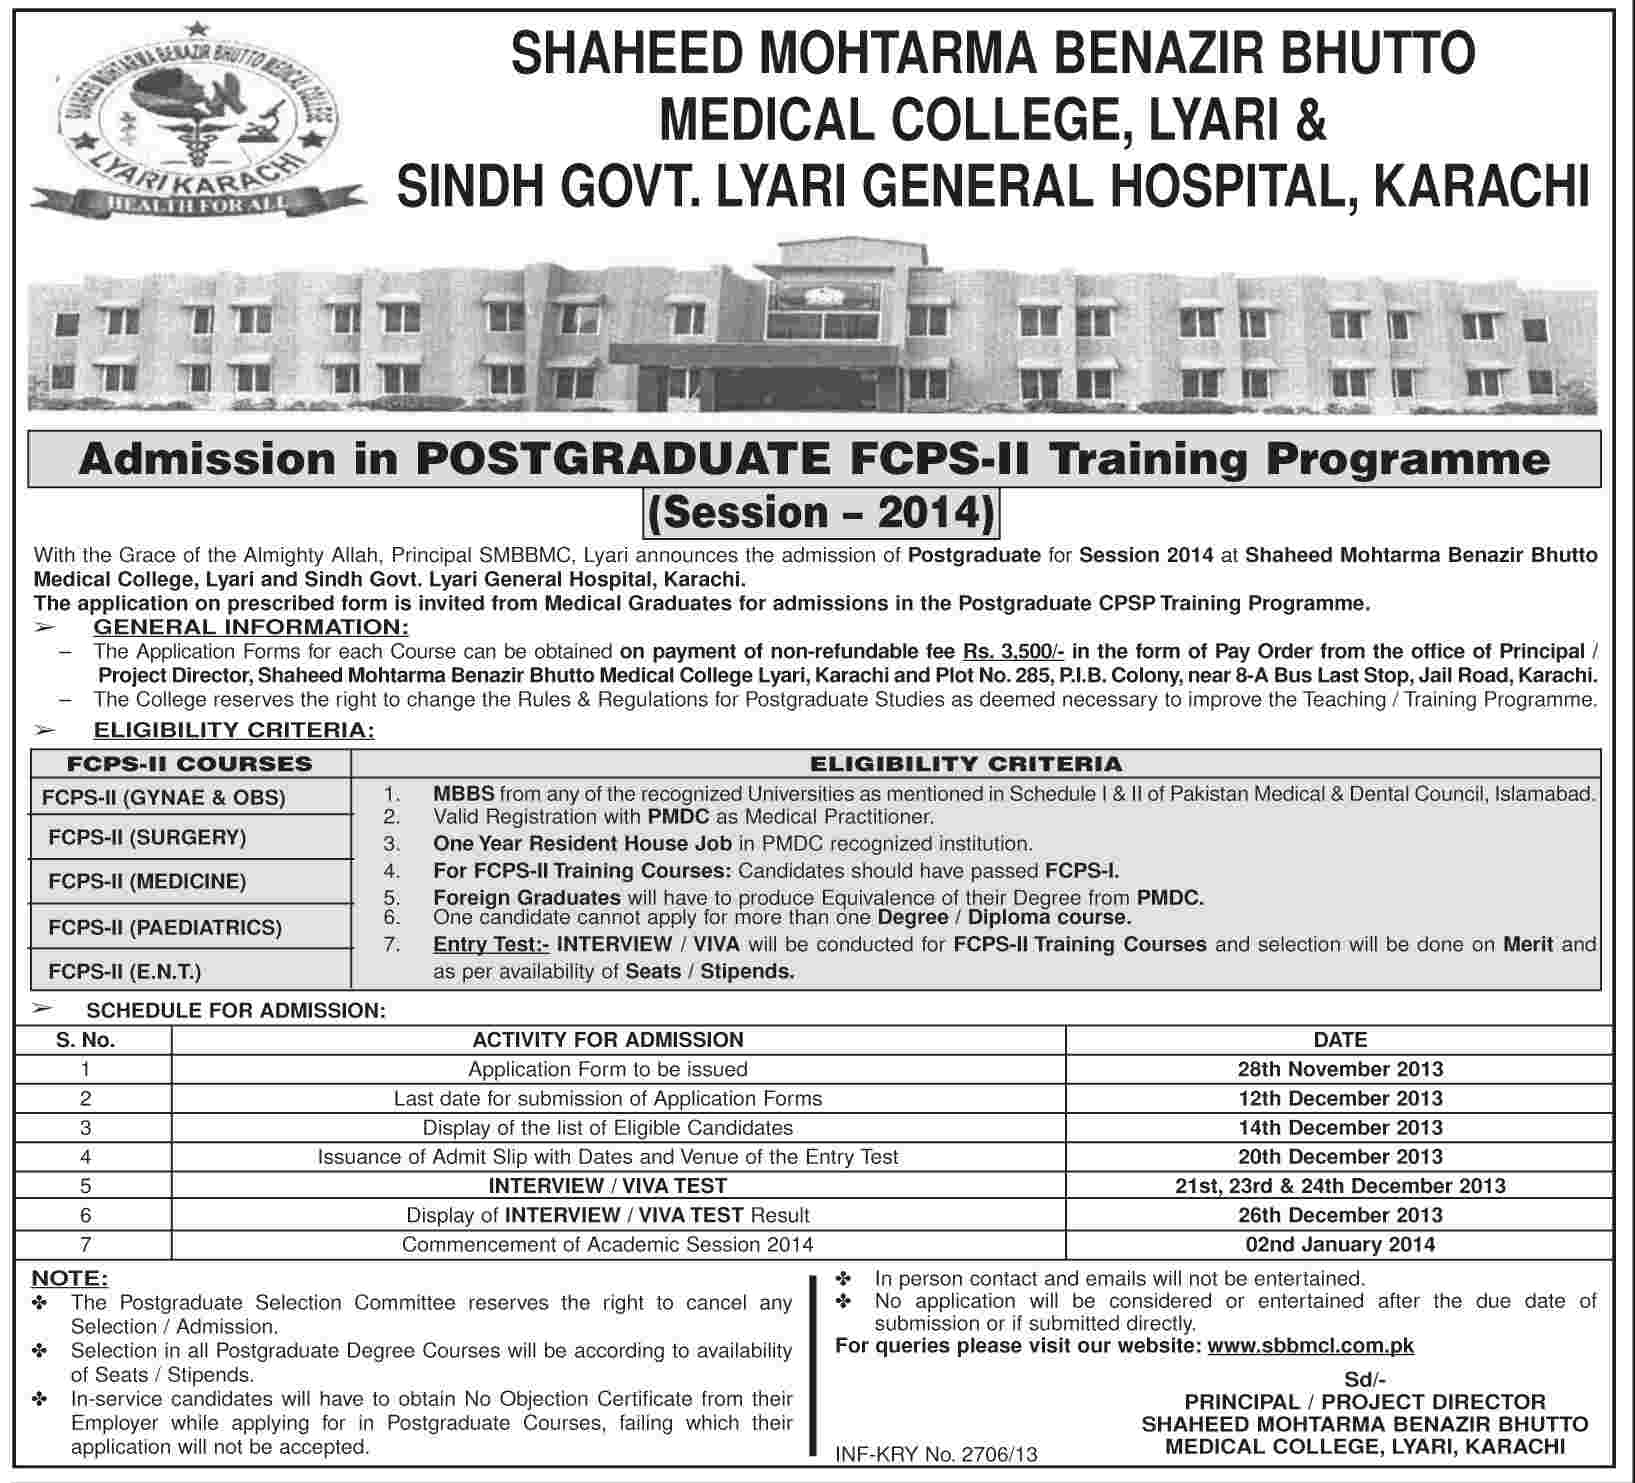 Shaheed Mohtarma Benazir Bhutto Medical College Lyari Karachi Admission Notice 2013